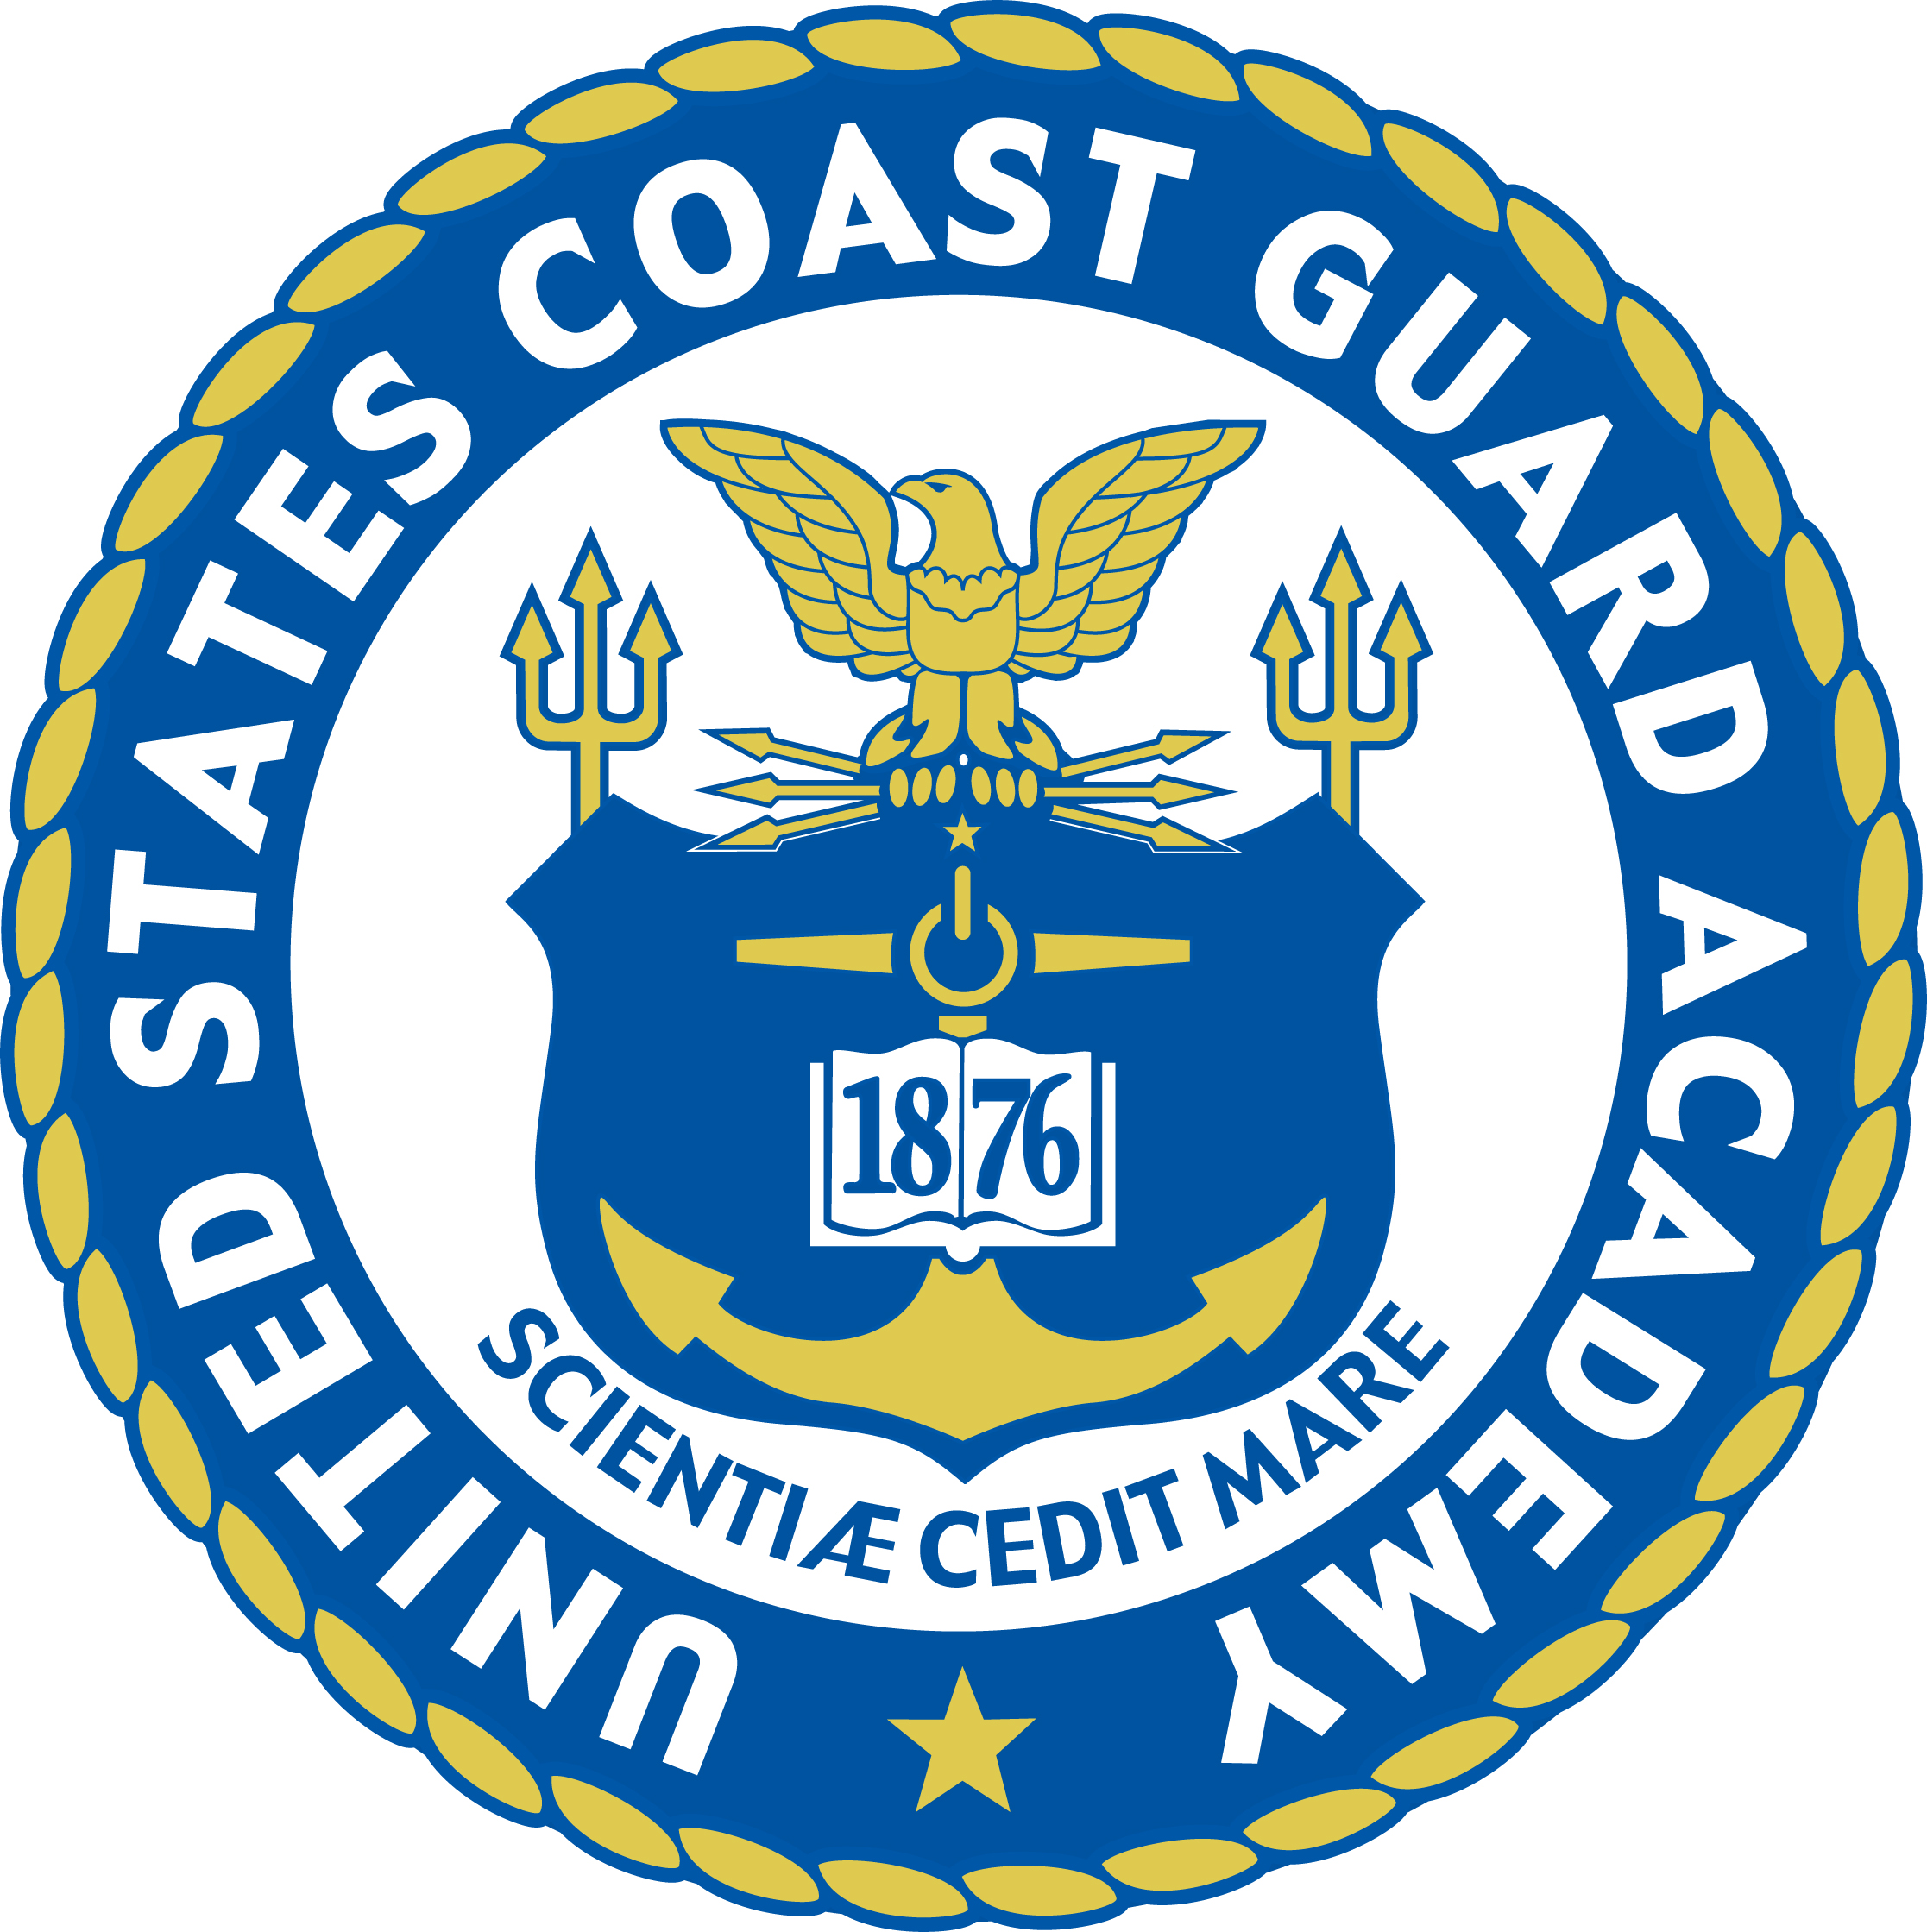 http://upload.wikimedia.org/wikipedia/commons/f/fe/United_States_Coast_Guard_Academy_seal.jpg